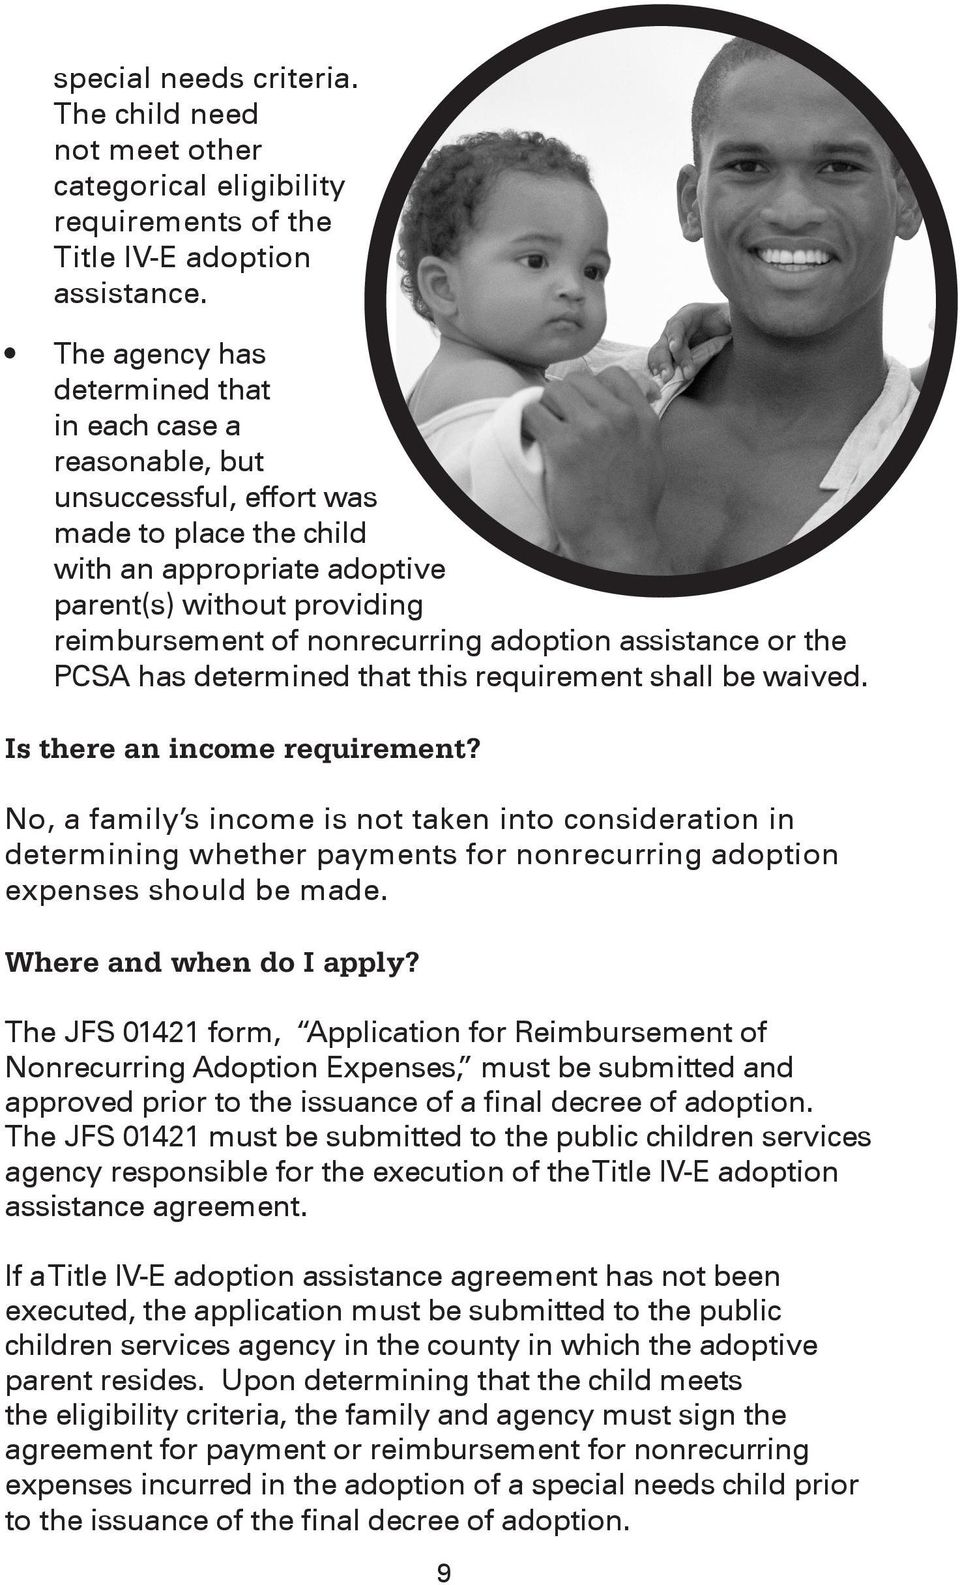 adoption assistance or the PCSA has determined that this requirement shall be waived. Is there an income requirement?